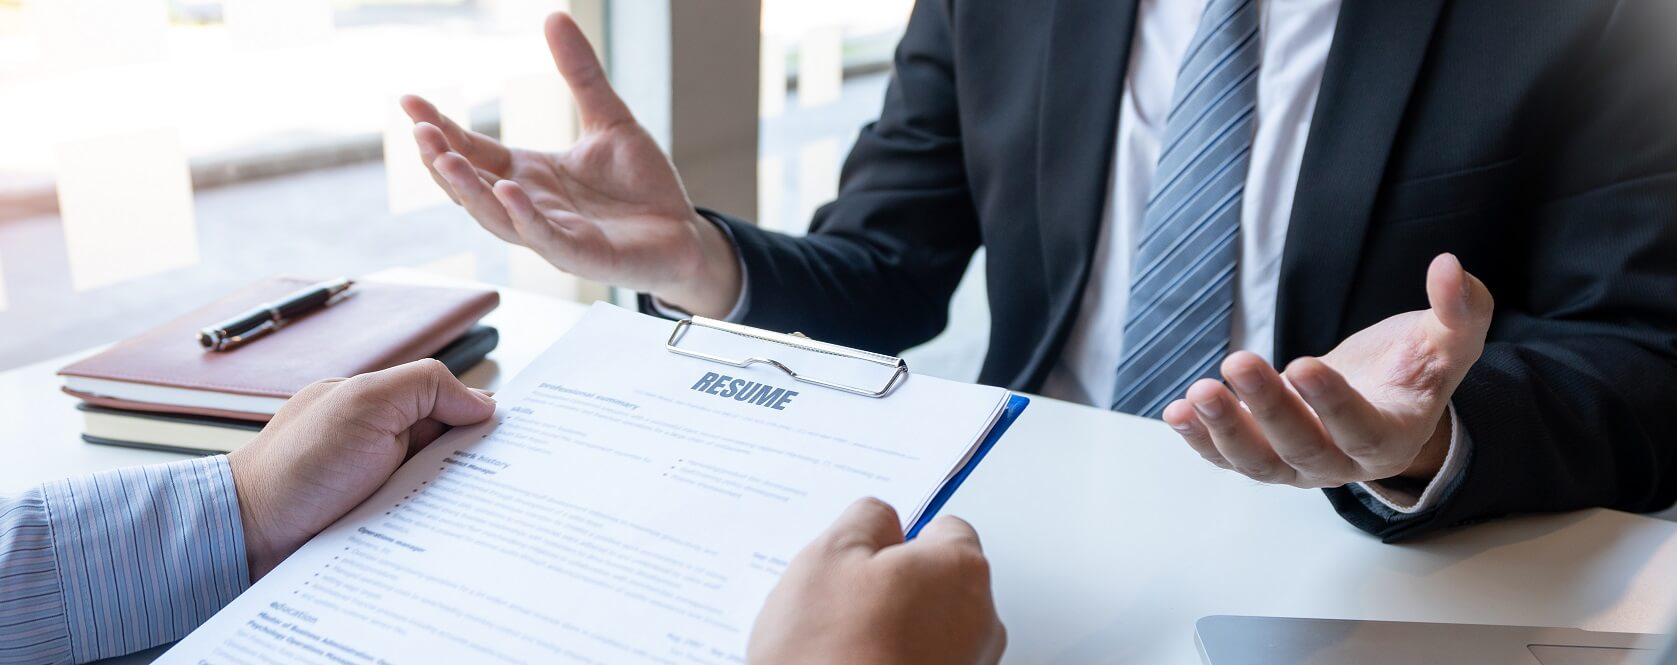 Interview the job and hiring, men candidate at job interview explaining about his profile to business manager in modern office space. Business consulting or employment concept